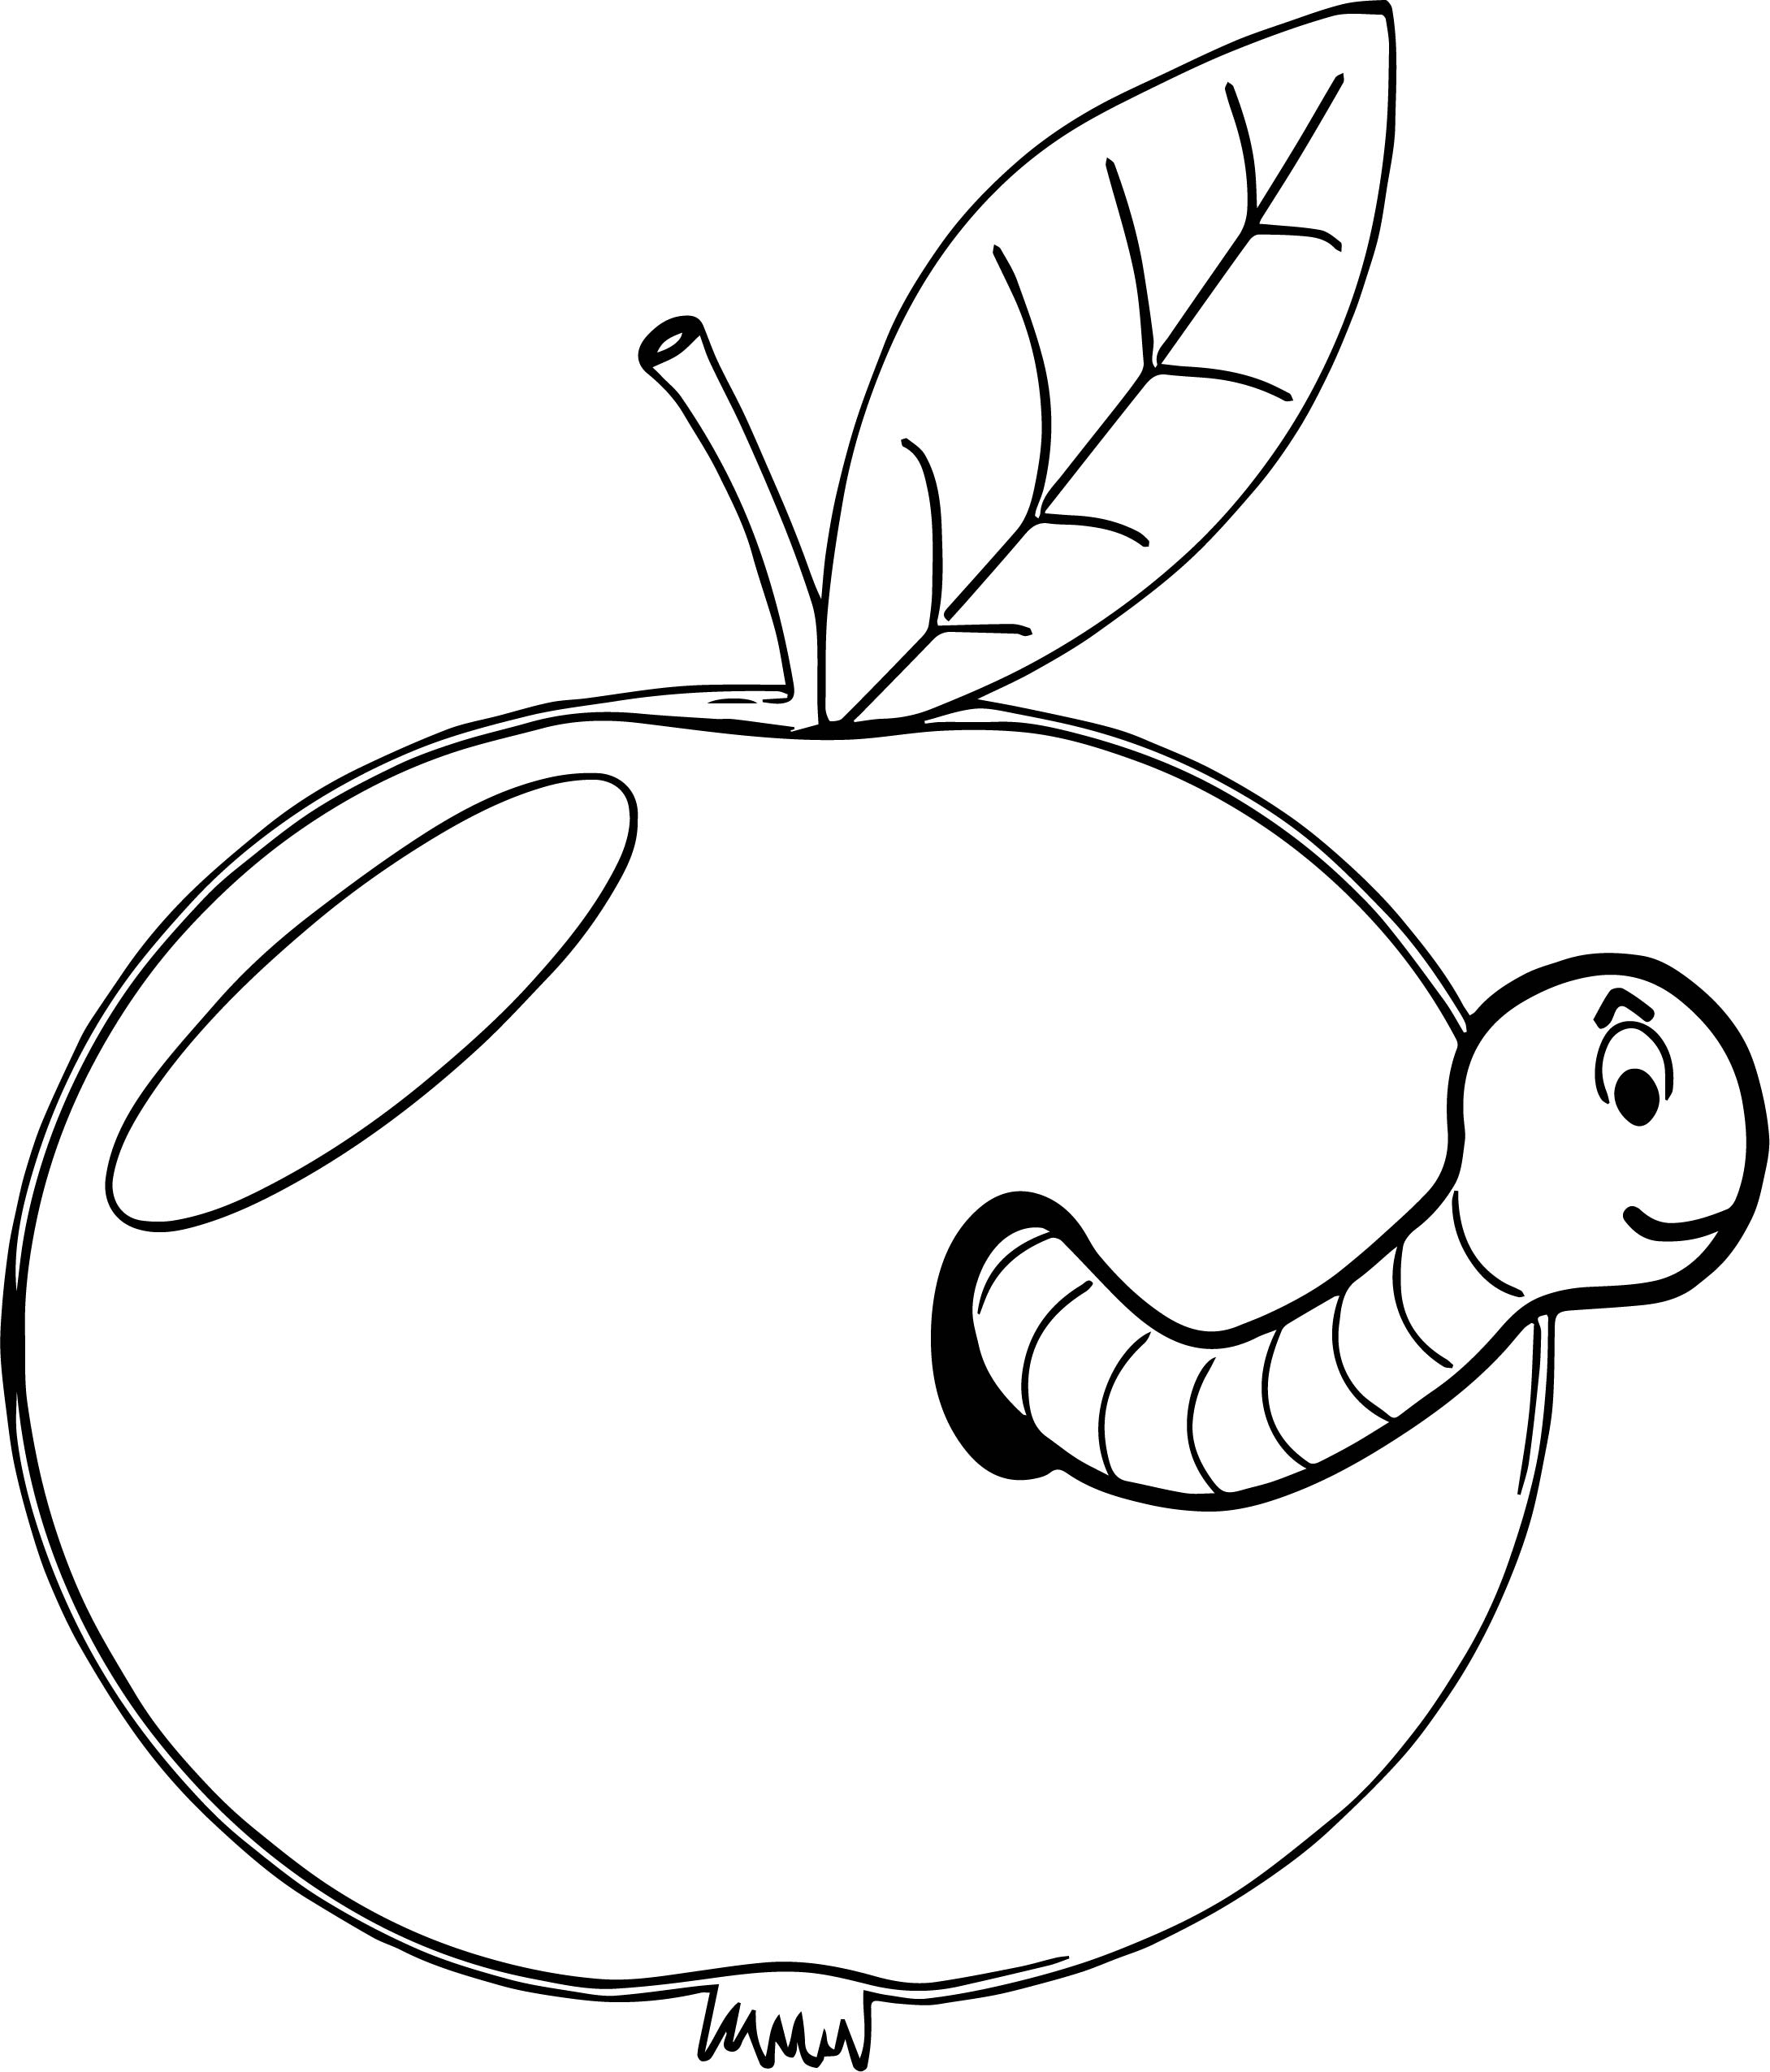 apple and worm coloring page wecoloringpage com